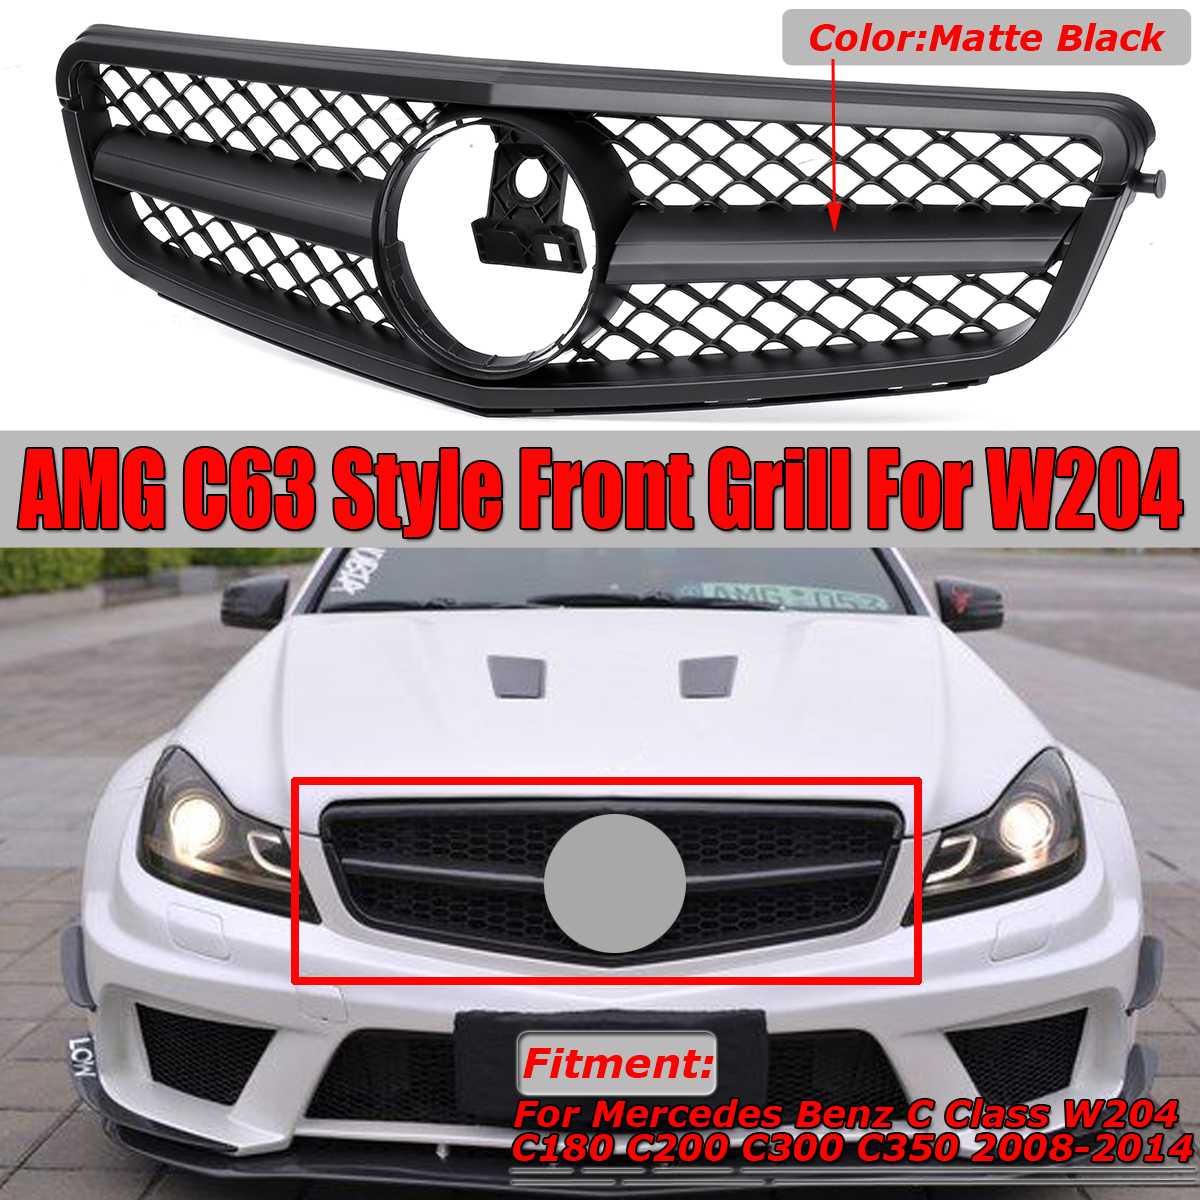 New C63 For AMG Style Car Front Grille Grill For <font><b>Mercedes</b></font> For Benz C Class W204 C180 C200 <font><b>C300</b></font> C350 2008-2014 Racing Grills image